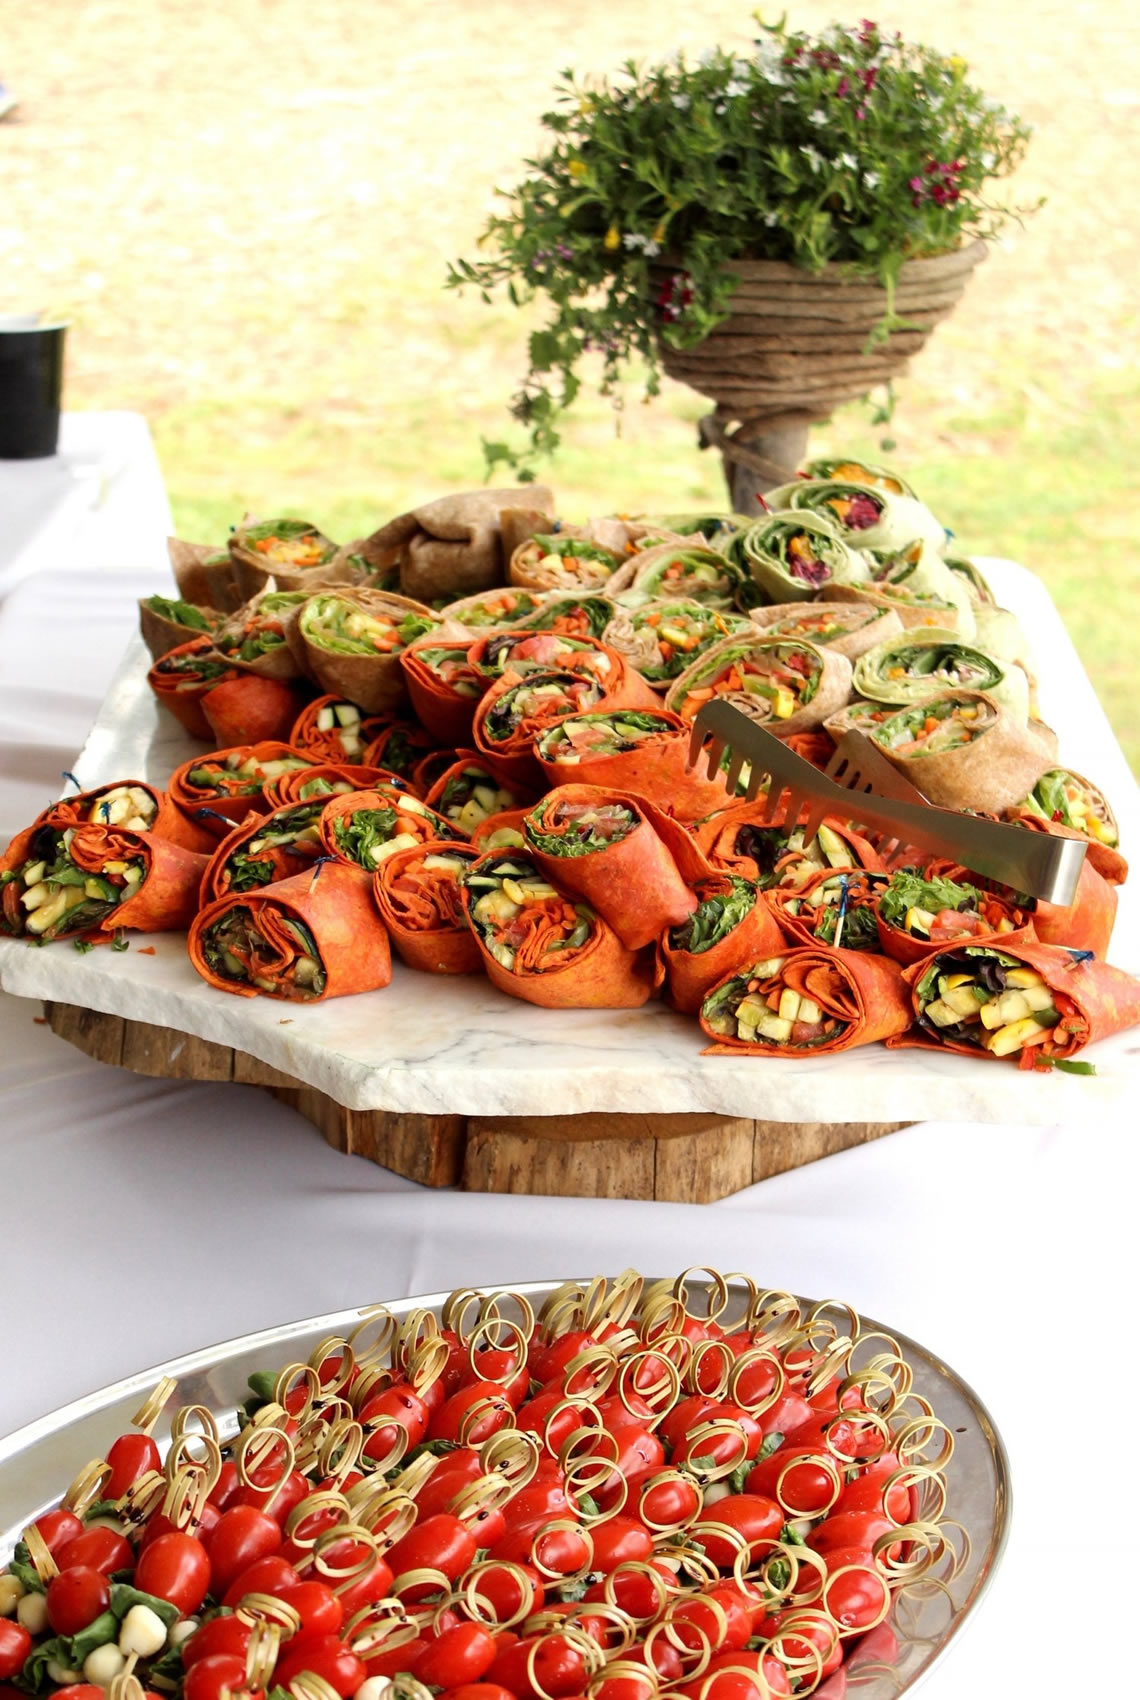 Catering Services Nairobi Kenya, Caterers Nairobi Kenya, Caterer Nairobi Kenya, Catering Nairobi Kenya, Caterers Mombasa, Caterer Mombasa Kenya, Catering Mombasa Kenya, Caterers Kisumu Kenya, Caterer Kisumu Kenya, Catering Kisumu Kenya, Caterers Eldoret Kenya, Caterer Eldoret Kenya, Catering Nairobi Kenya, Benjoes Grill Caterers, Caterers Nairobi Kenya, Caterer Nairobi Kenya, Catering Nairobi Kenya, Catering services in Kenya, Catering company in Nairobi Kenya, Top caterers in Kenya, Catering services Nairobi Kenya, Food catering services, Wedding Caterers in Nairobi, Wedding Caterers in Kenya,Cheap outside catering, affordable catering, delicious outside catering, outside catering in Nairobi, Nairobi Outside Catering Companies, Leading outside catering in Kenya, delicious catering, catering in Kenya, Outside caterers in Nairobi Kenya, Catering Services, Catering Services in Nairobi, One Stop Catering Shop, Catering Out Fit, Nairobi Caterers, Best Nairobi Caterers, Nairobi Catering, Nairobi Best Caterers, Best Outside Caterers Nairobi, Outside Catering in Nairobi, Nairobi Outside Caterers, Nairobi Catering, Corporate Caterers, Corporate Nairobi Caterers, Nairobi Food Caterers, Outside Catering Nairobi, Outside Catering, cater for your event, cater for a number of events, leading caterers in Nairobi, End of year Party, holiday party, corporate picnic, cater your wedding, catering wedding, Nairobi, boutique catering company, fundraising, large regional events, birthday and retirement parties, social events, best caterers in Nairobi, caterers in Nairobi, wedding caterers in Nairobi, outside caterers in Nairobi, wedding caterers in Nairobi Kenya, best caterers in Nairobi, list of caterers in Nairobi, best outside caterers in Nairobi, catering Nairobi Kenya, outside caterers Nairobi, wedding caterers, Nairobi, spring caterers Nairobi, royal caterers Nairobi, harvesters caterers Nairobi, home park caterers Nairobi, san valencia caterers Nairobi,caterers Nairobi,catering Nairobi Kenya, outside caterers Nairobi, coconut caterers Nairobi, wedding caterers Nairobi, spring caterers Nairobi, royal caterers Nairobi,Indian caterers Nairobi, harvesters caterers Nairobi, home park caterers Nairobi, Wedding Caterers in Nairobi, Wedding Caterers in Kenya, Caterers in Kenya, Tamarind Nairobi Caterers, Caterers Uganda, Caterer Uganda, Catering Uganda, Caterers Kampala, Caterer Kampala, Catering Kampala, Caterers Tanzania, Caterer Tanzania, Catering Tanzania, Caterers Dar Es Salaam, Caterer Dar Es Salaam, Catering Dar Es Salaam, Caterers Rwanda, Caterer Rwanda, Catering Rwanda, Caterers Kigali, Caterer Kigali, Catering Kigali